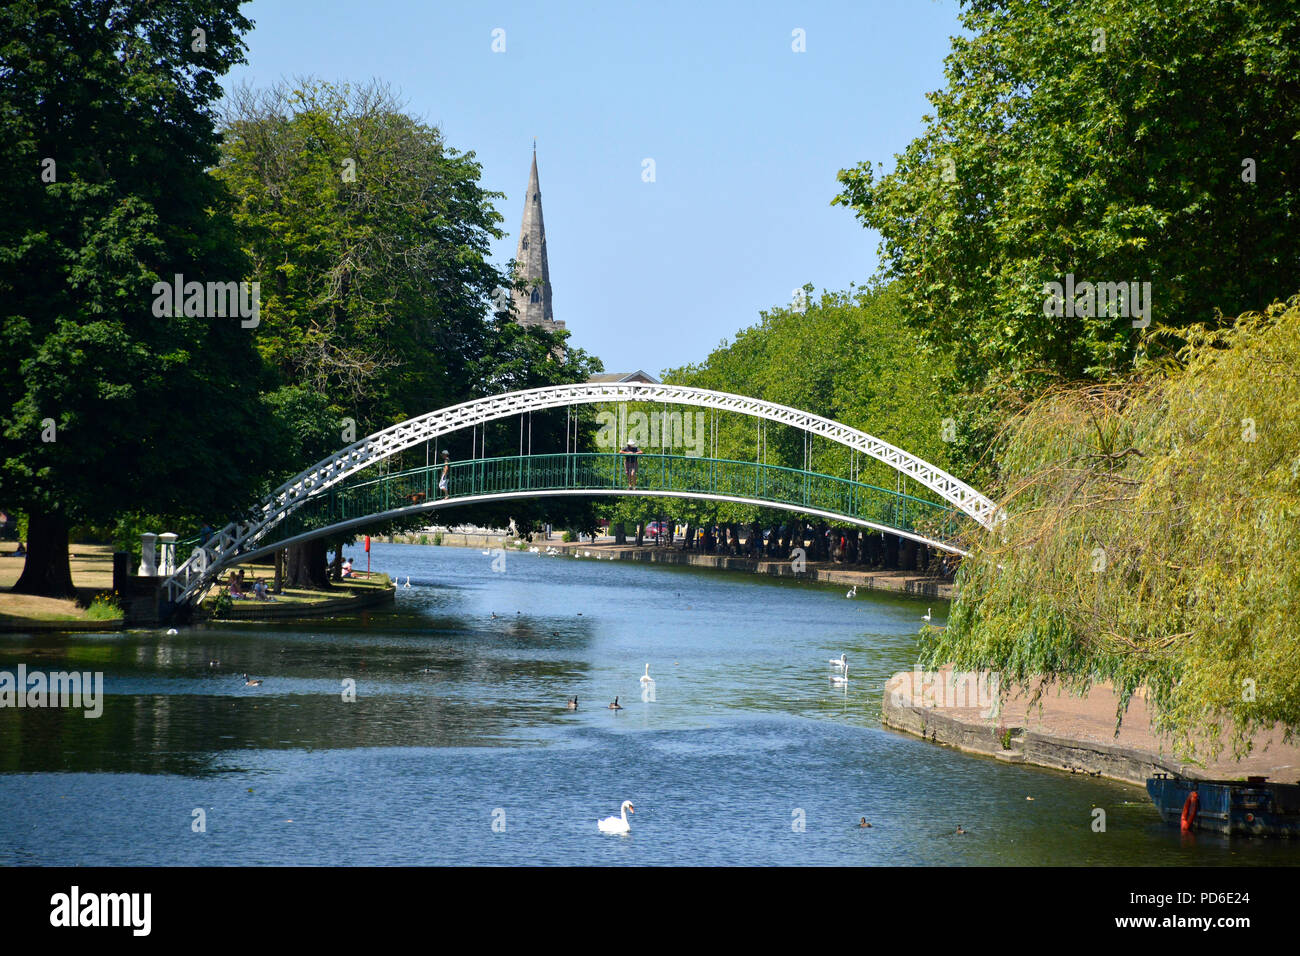 View of a foot bridge over the River Great Ouse flowing through Bedford, UK - Stock Image